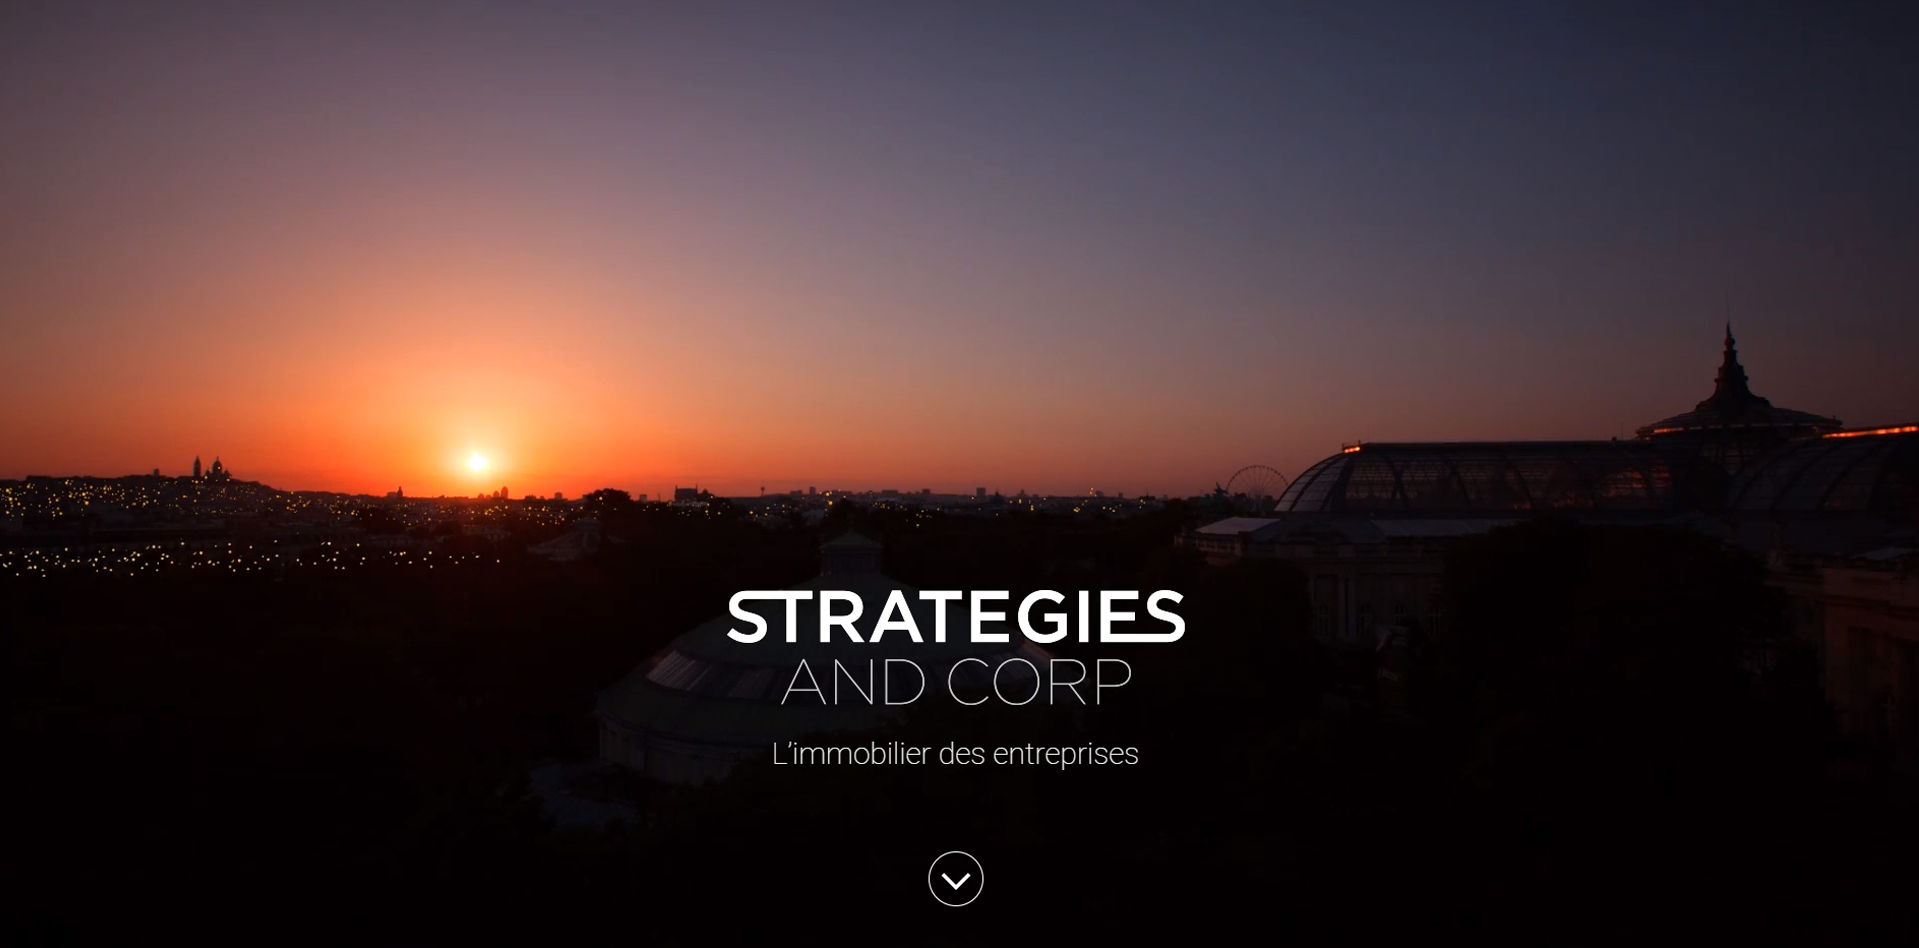 Site strategies and corp - Agence F+